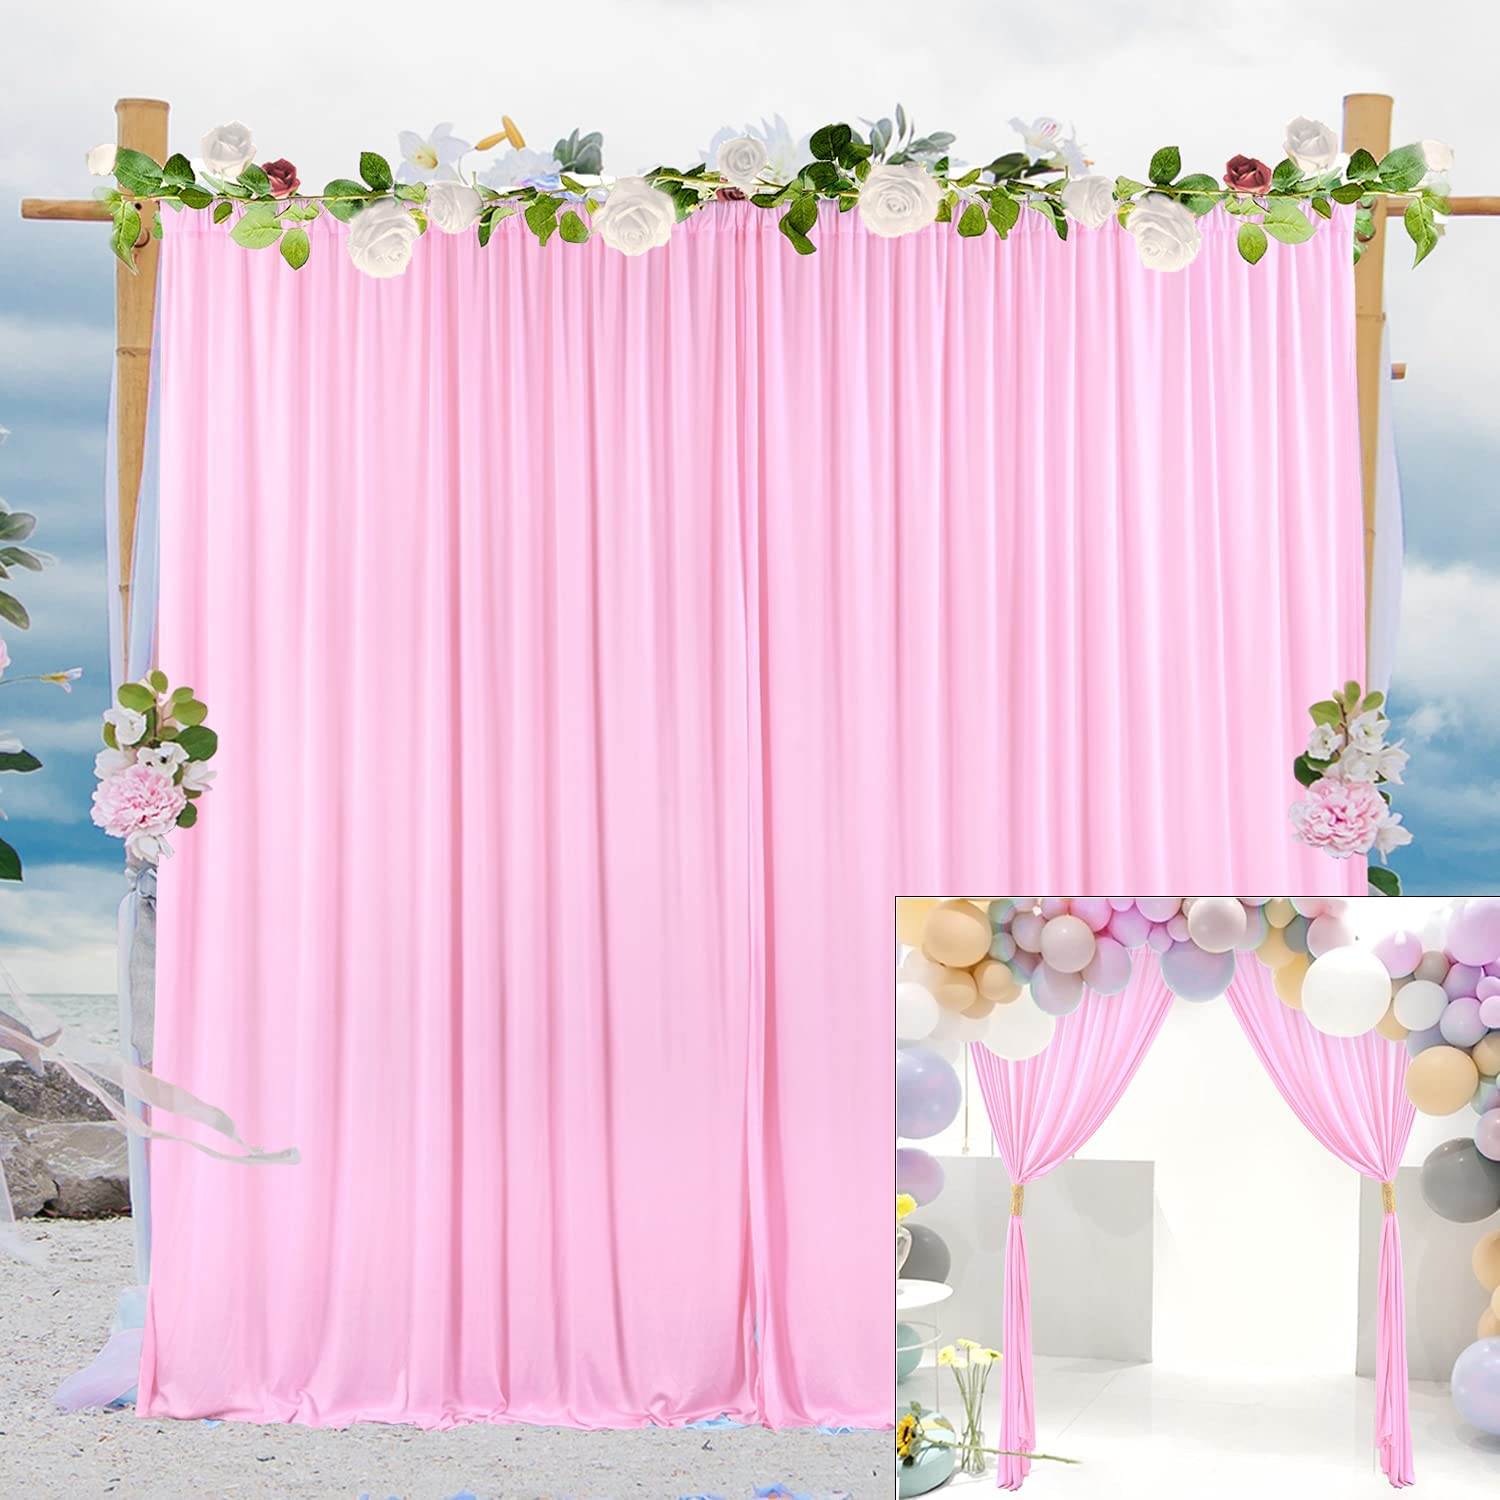 Pink Backdrop Curtain for Wedding Shower Photography Ranking TOP18 Baby Washington Mall Party